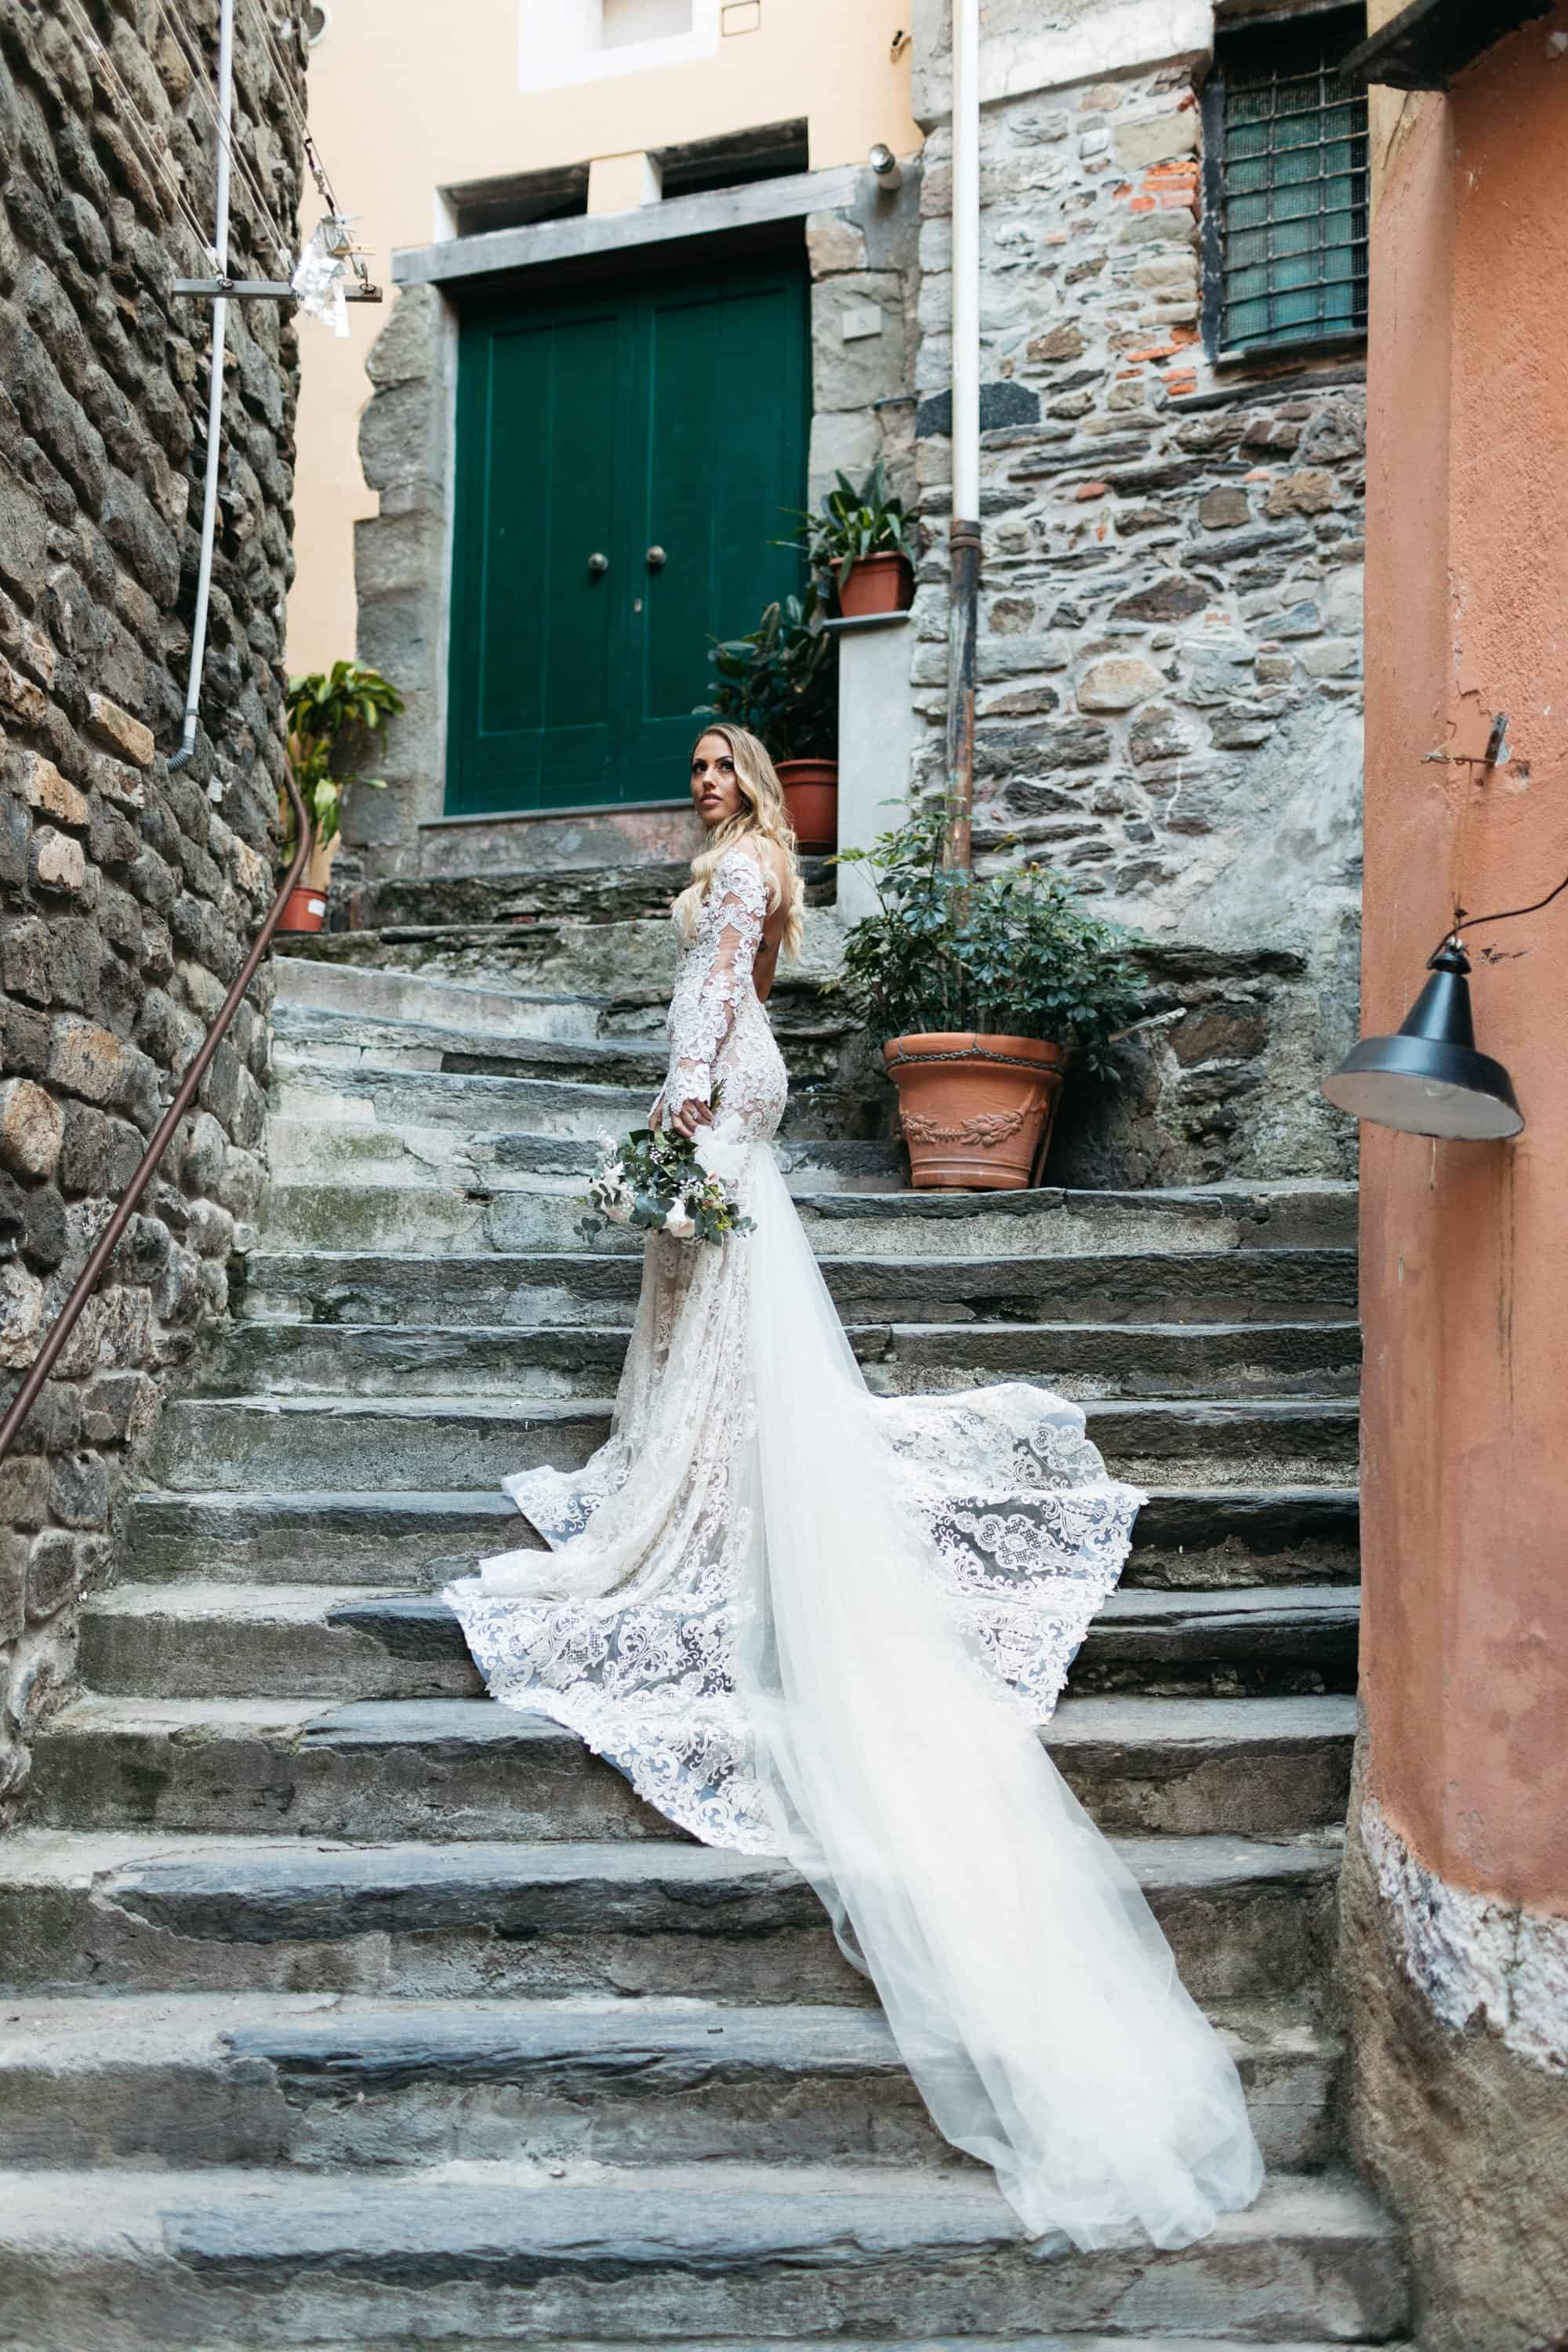 berta bridal dress in italy